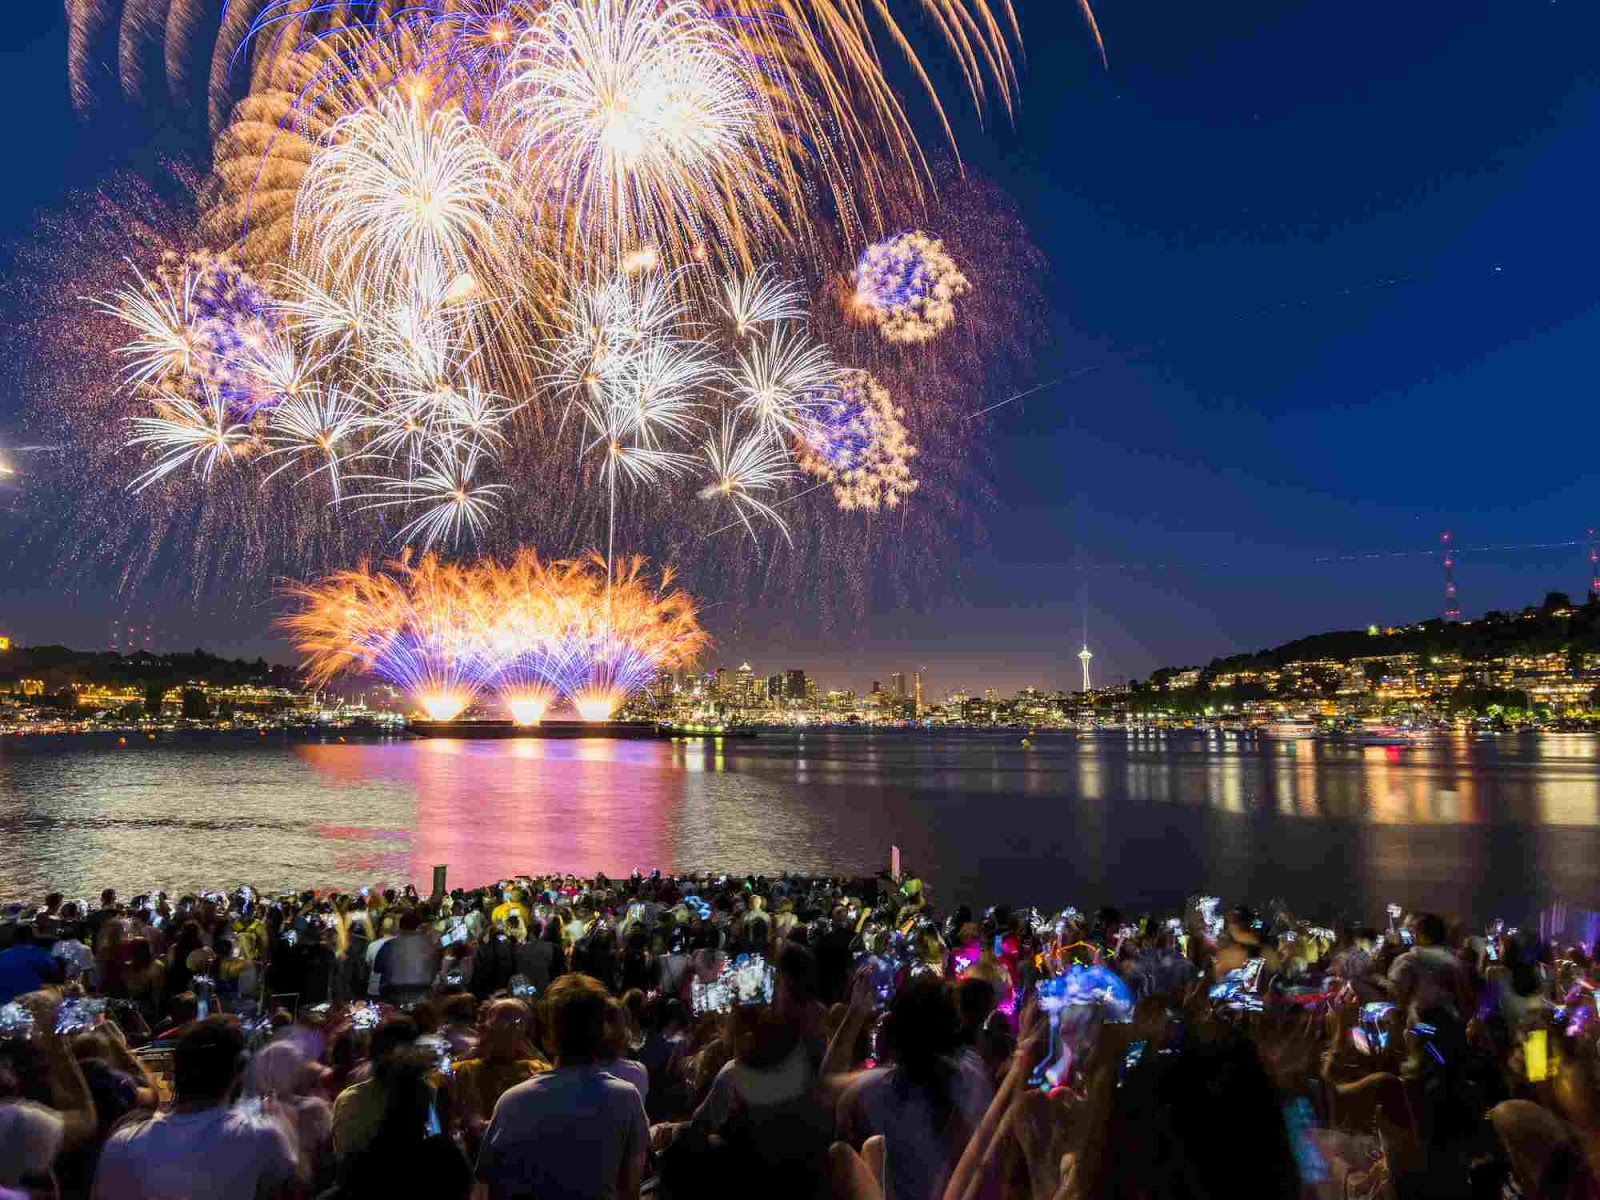 Things to Do for July 4th in Seattle